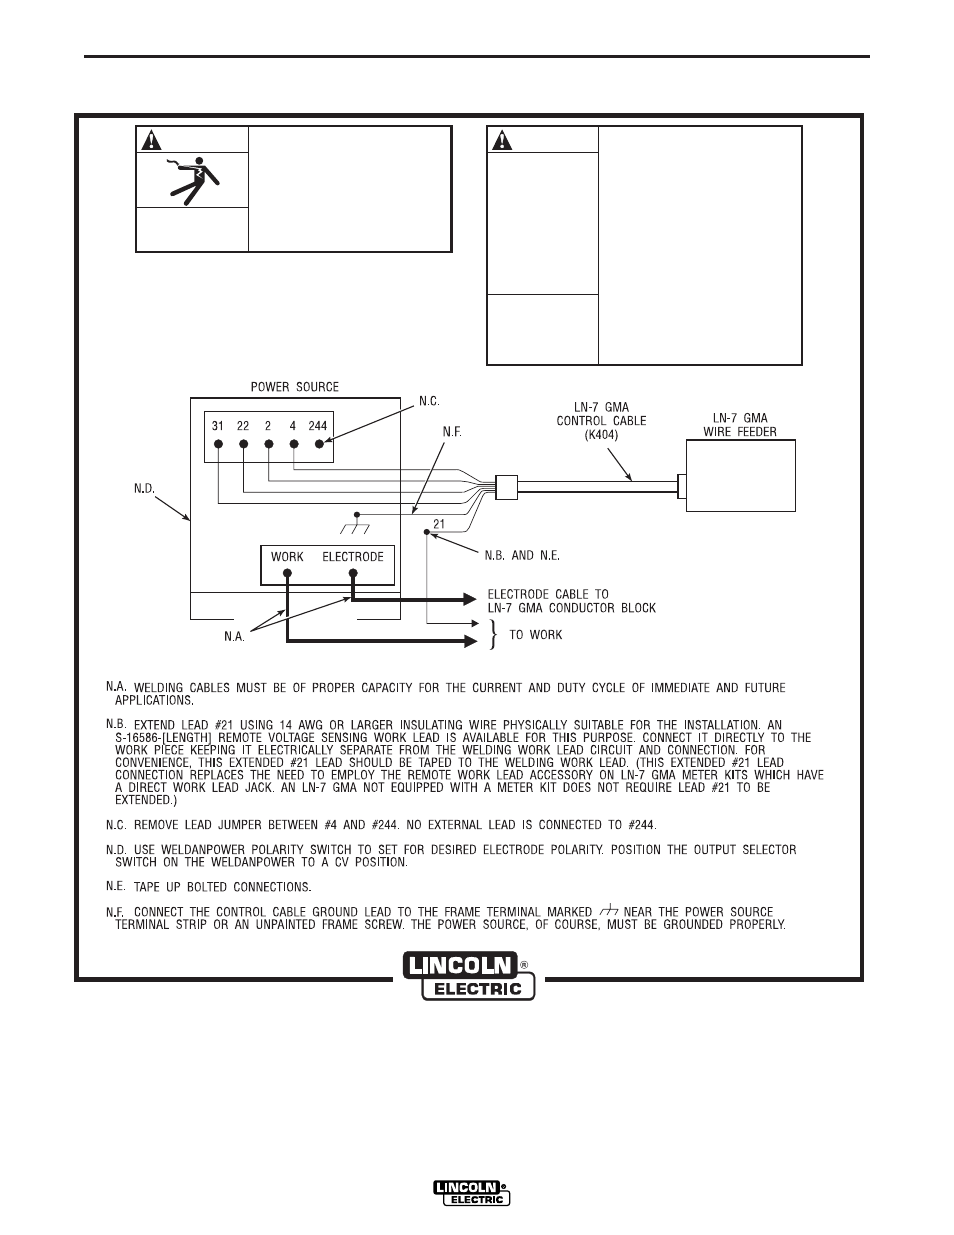 Lincoln Ln7 Wiring Diagrams | WIRING DIAGRAM eBOOK on lincoln ls relay diagram, lincoln starting problems, lincoln parts diagrams, lincoln ls wire harness diagram, lincoln continental horn schematics and diagram, 92 lincoln air suspension diagrams, lincoln transmission diagrams, lincoln heater core replacement, lincoln front suspension, 2000 lincoln ls diagrams, lincoln brakes,